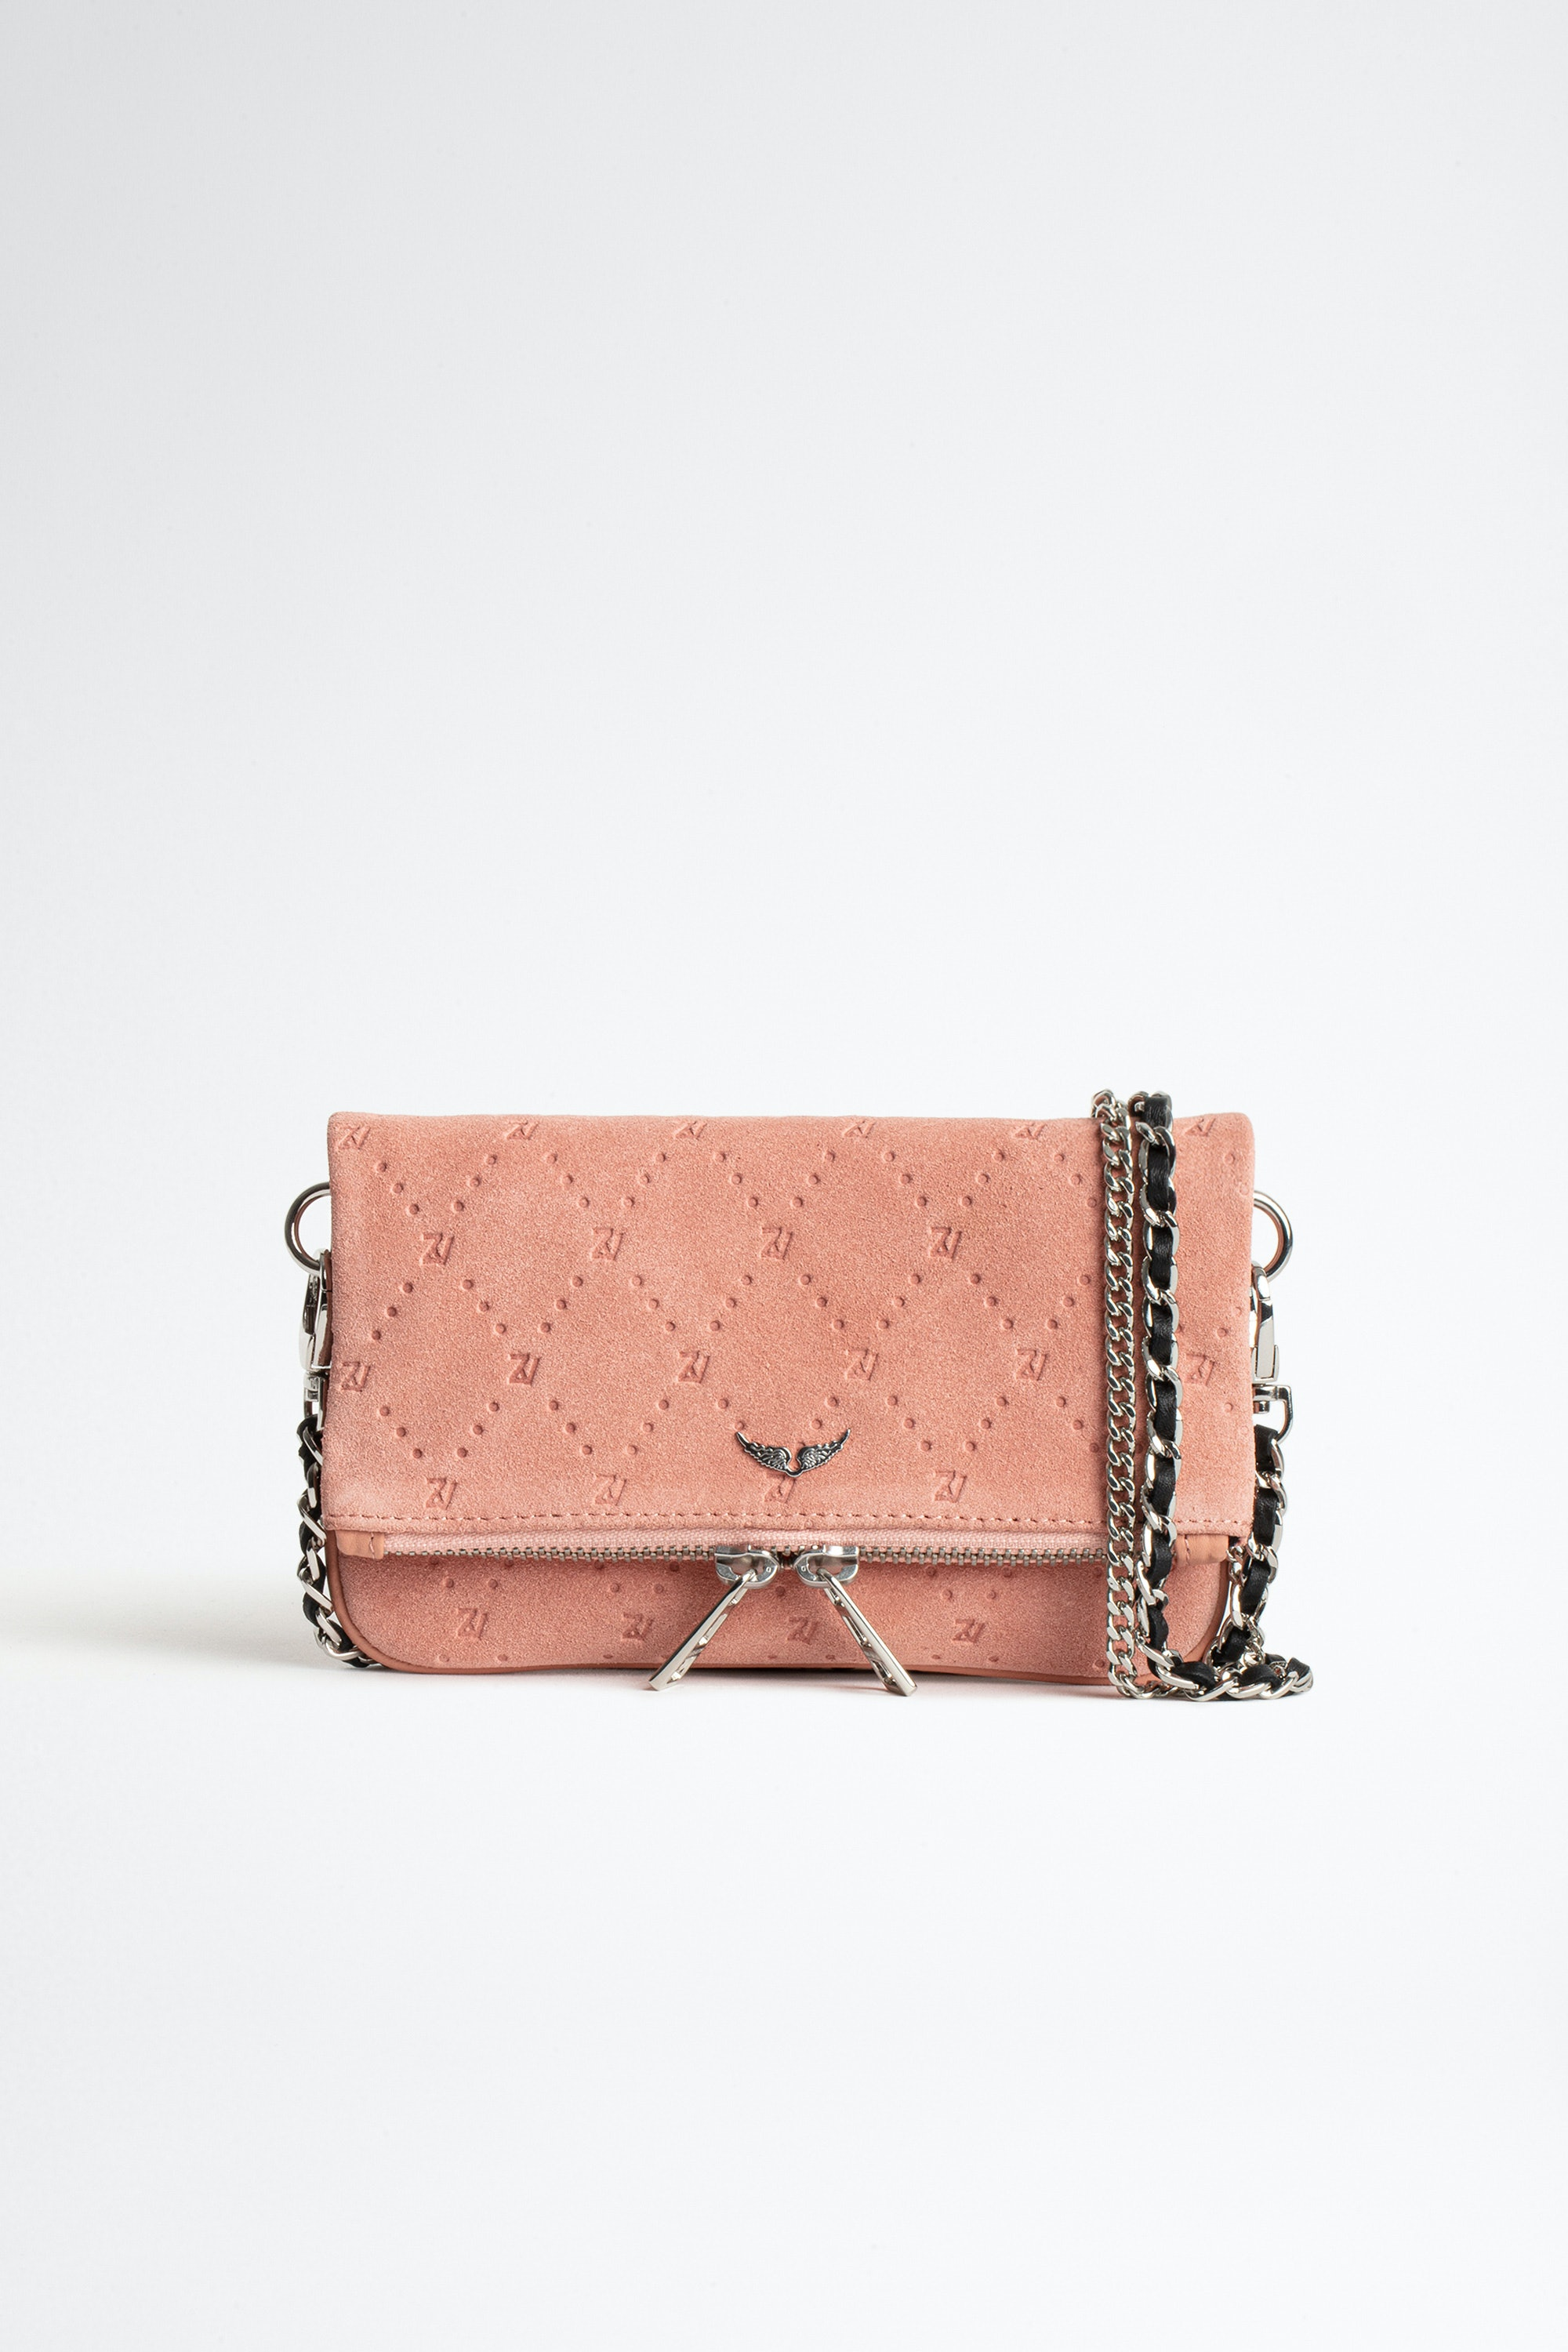 Rock Nano Zv Embossed Suede Clutch